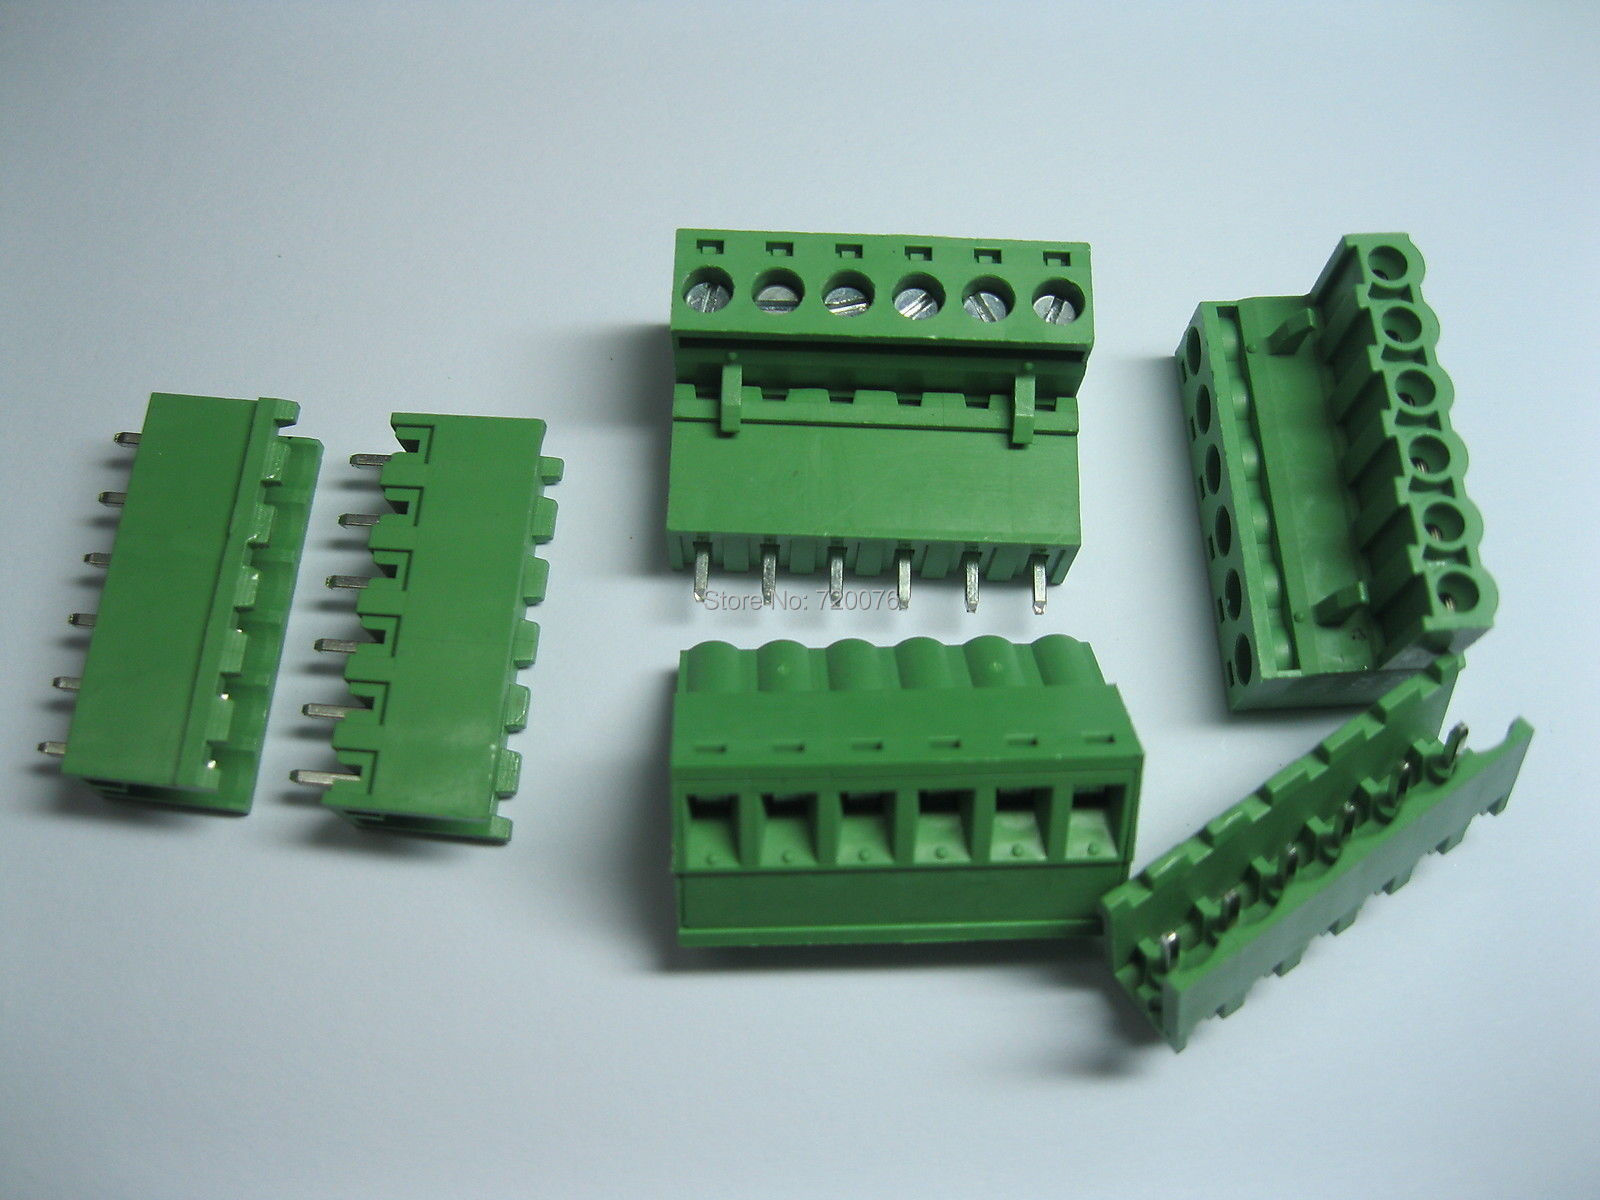 100 pcs Green 6 pin 5.08mm Screw Terminal Block Connector Pluggable Type 30 pcs screw terminal block connector 3 81mm 12 pin green pluggable type